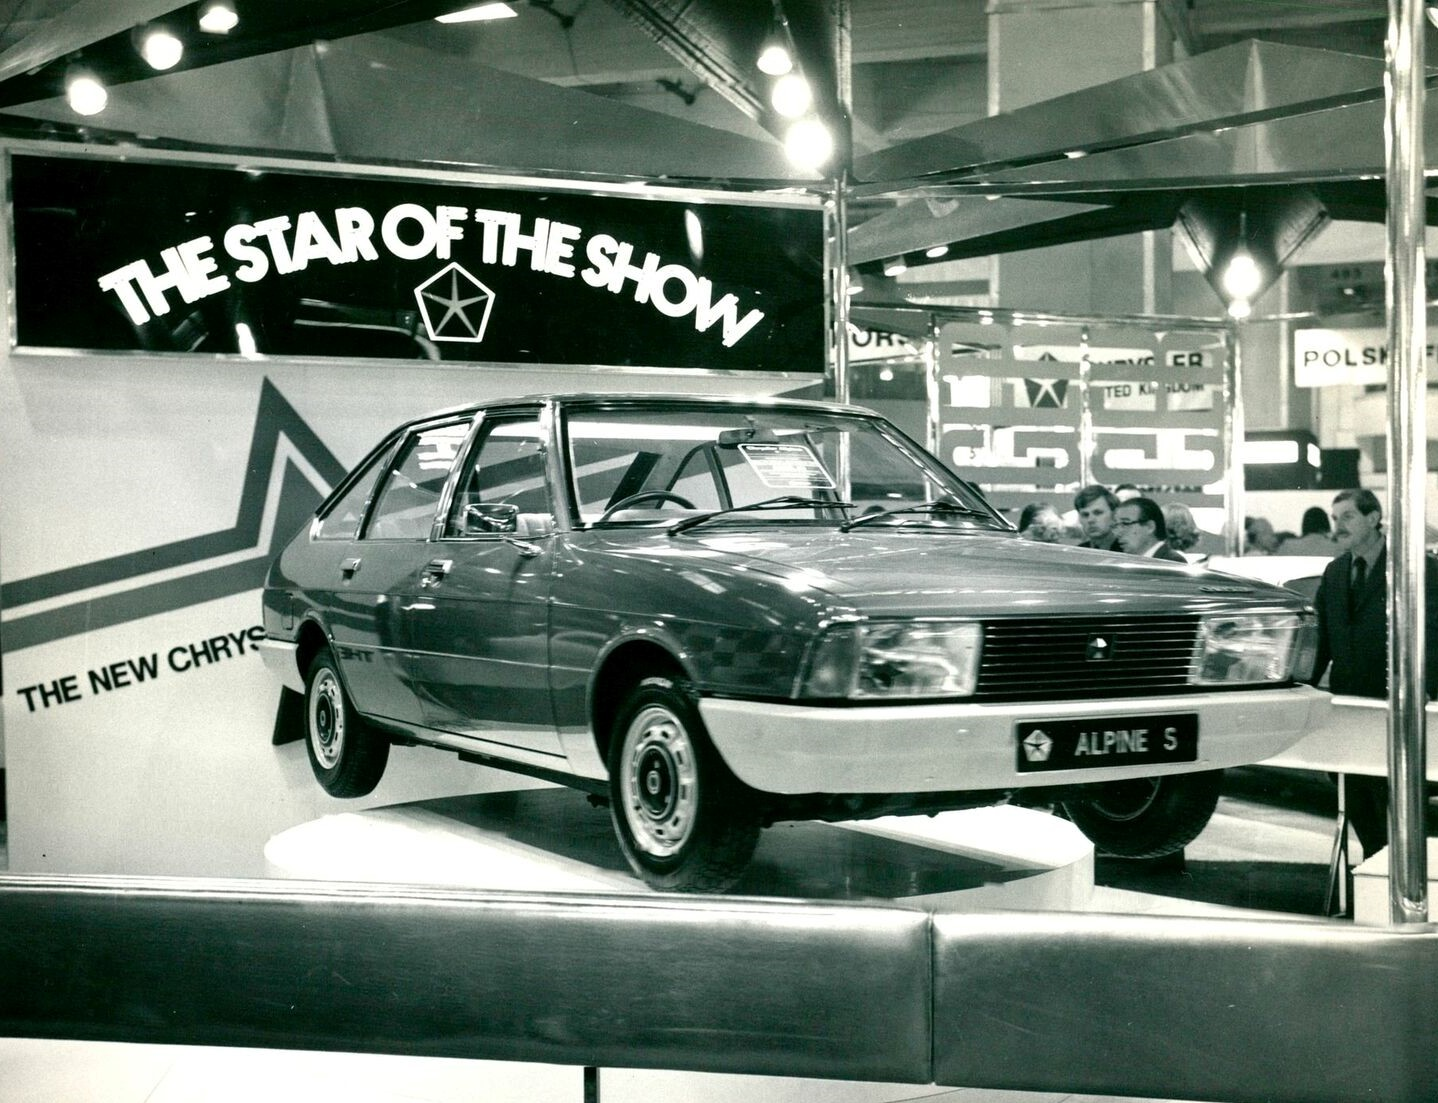 THE-STAR-OF-THE-SHOW--CHRYSLER-ALPINE--LONDON-EARLS-COURT-MOTOR-SHOW-1975--2